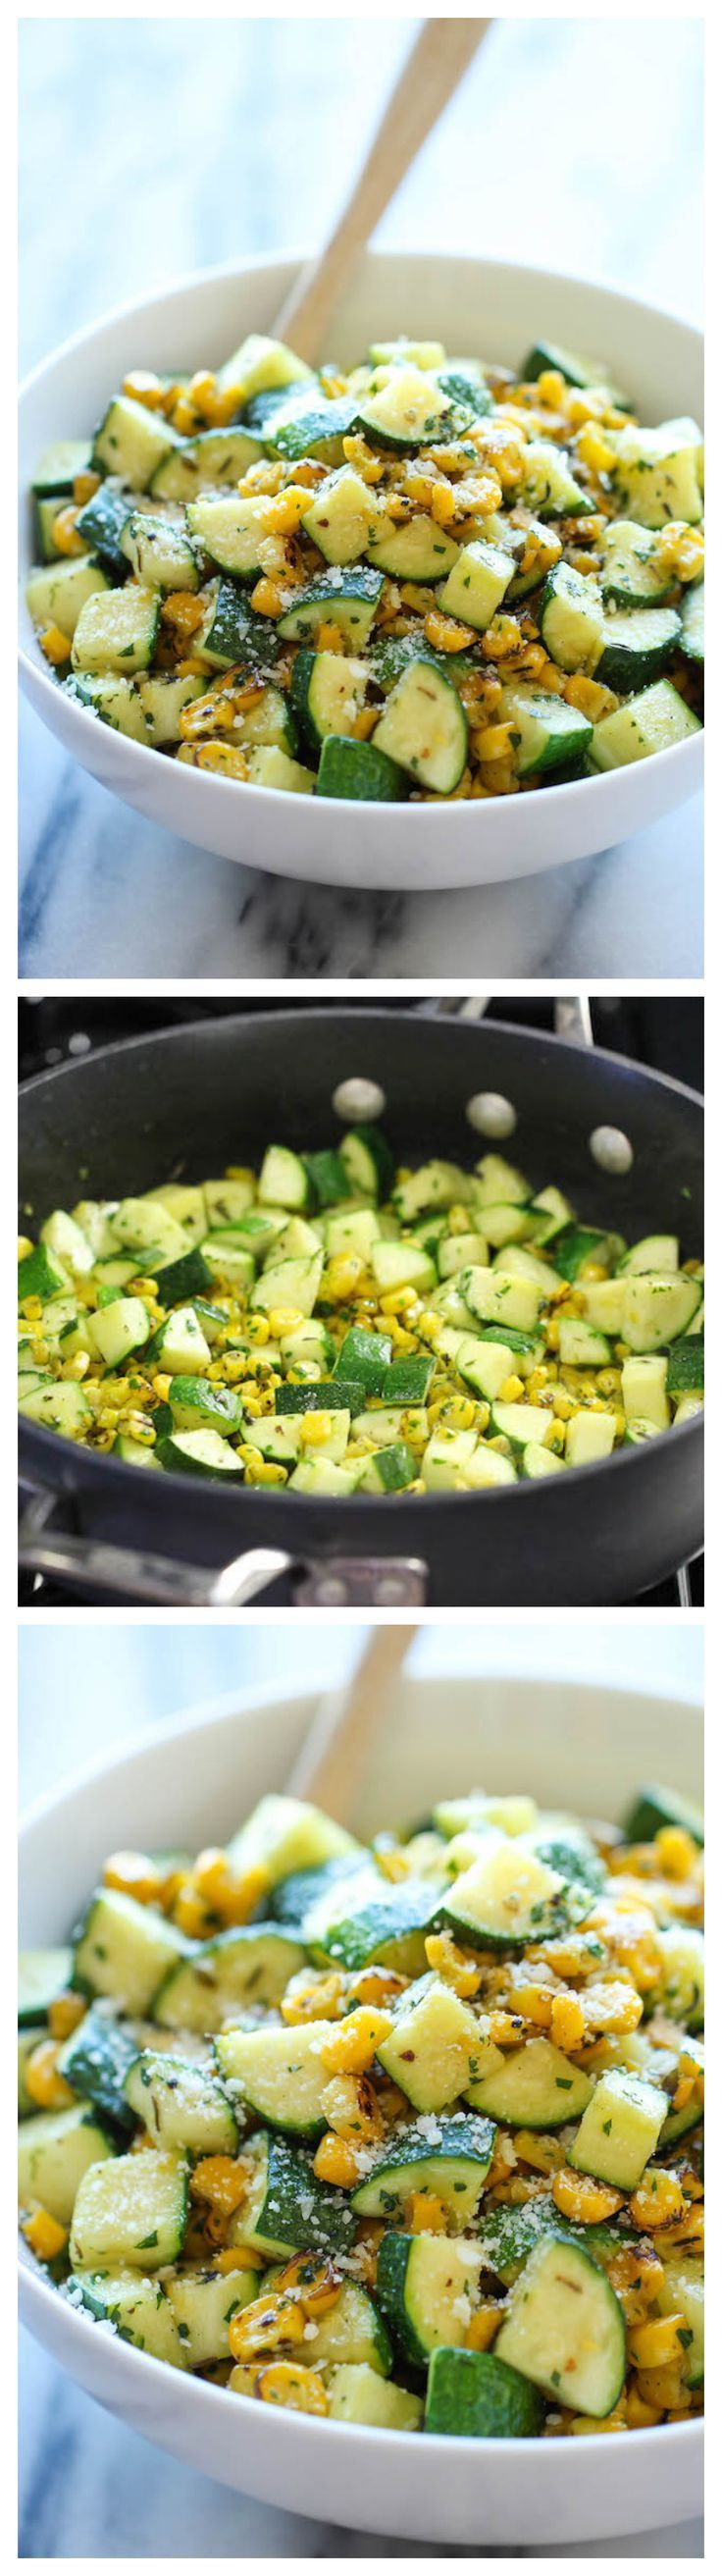 Parmesan Zucchini and Corn ~ Natural and healthy salad one can eat separately or as a side dish. It is very simple, delightful and looks very colorful and charming.